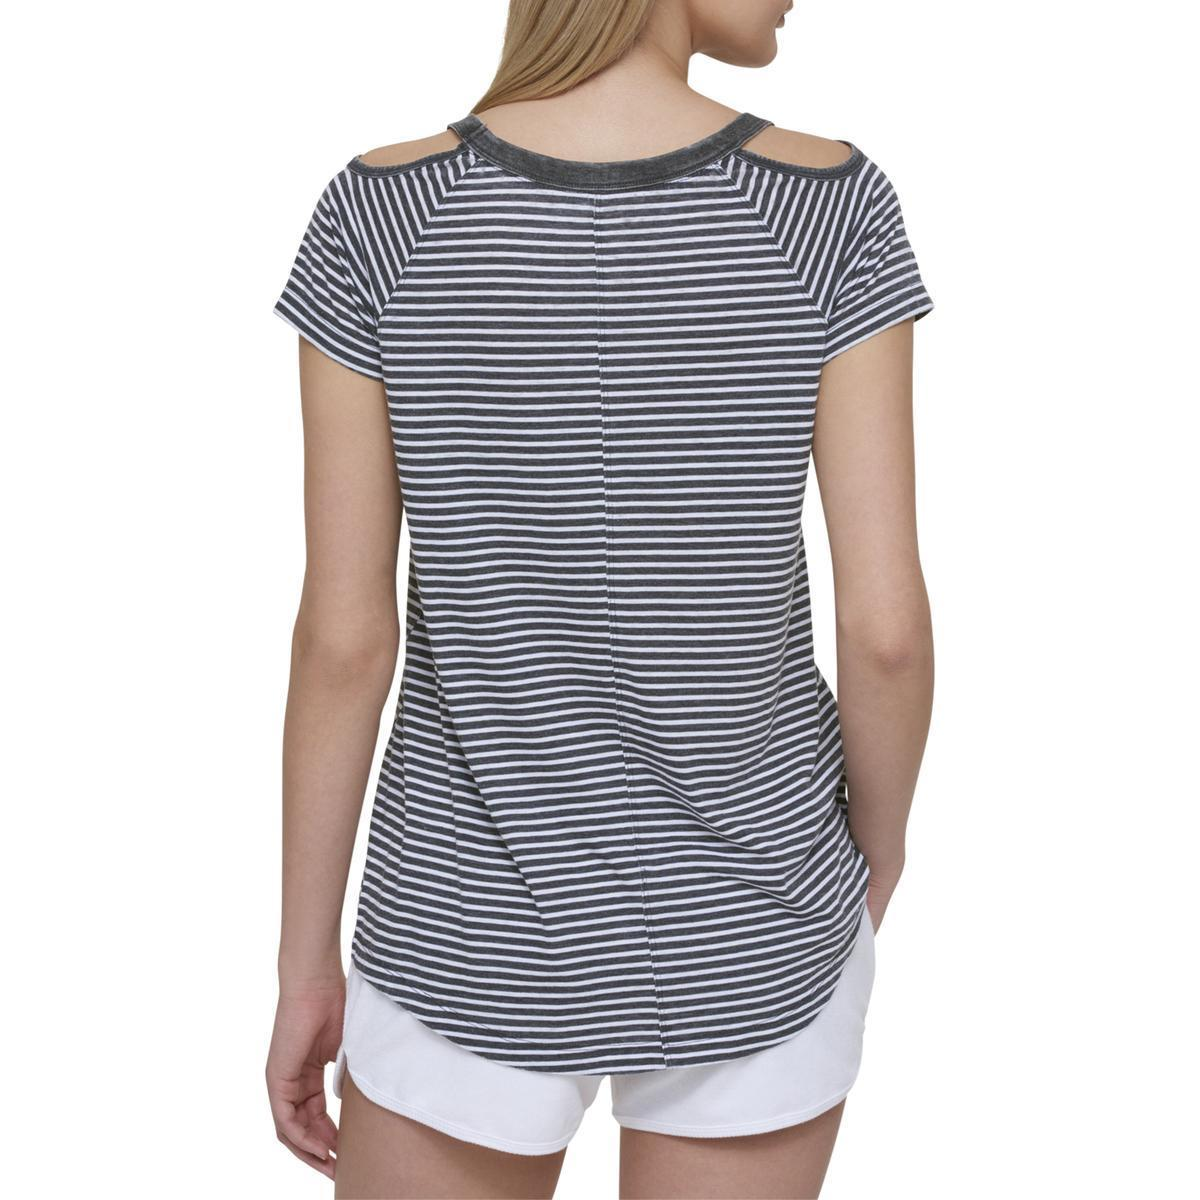 7f00732555841 Details about Tommy Hilfiger NEW Gray Women s Size Medium M Cold-Shoulder  Striped Top  39  482